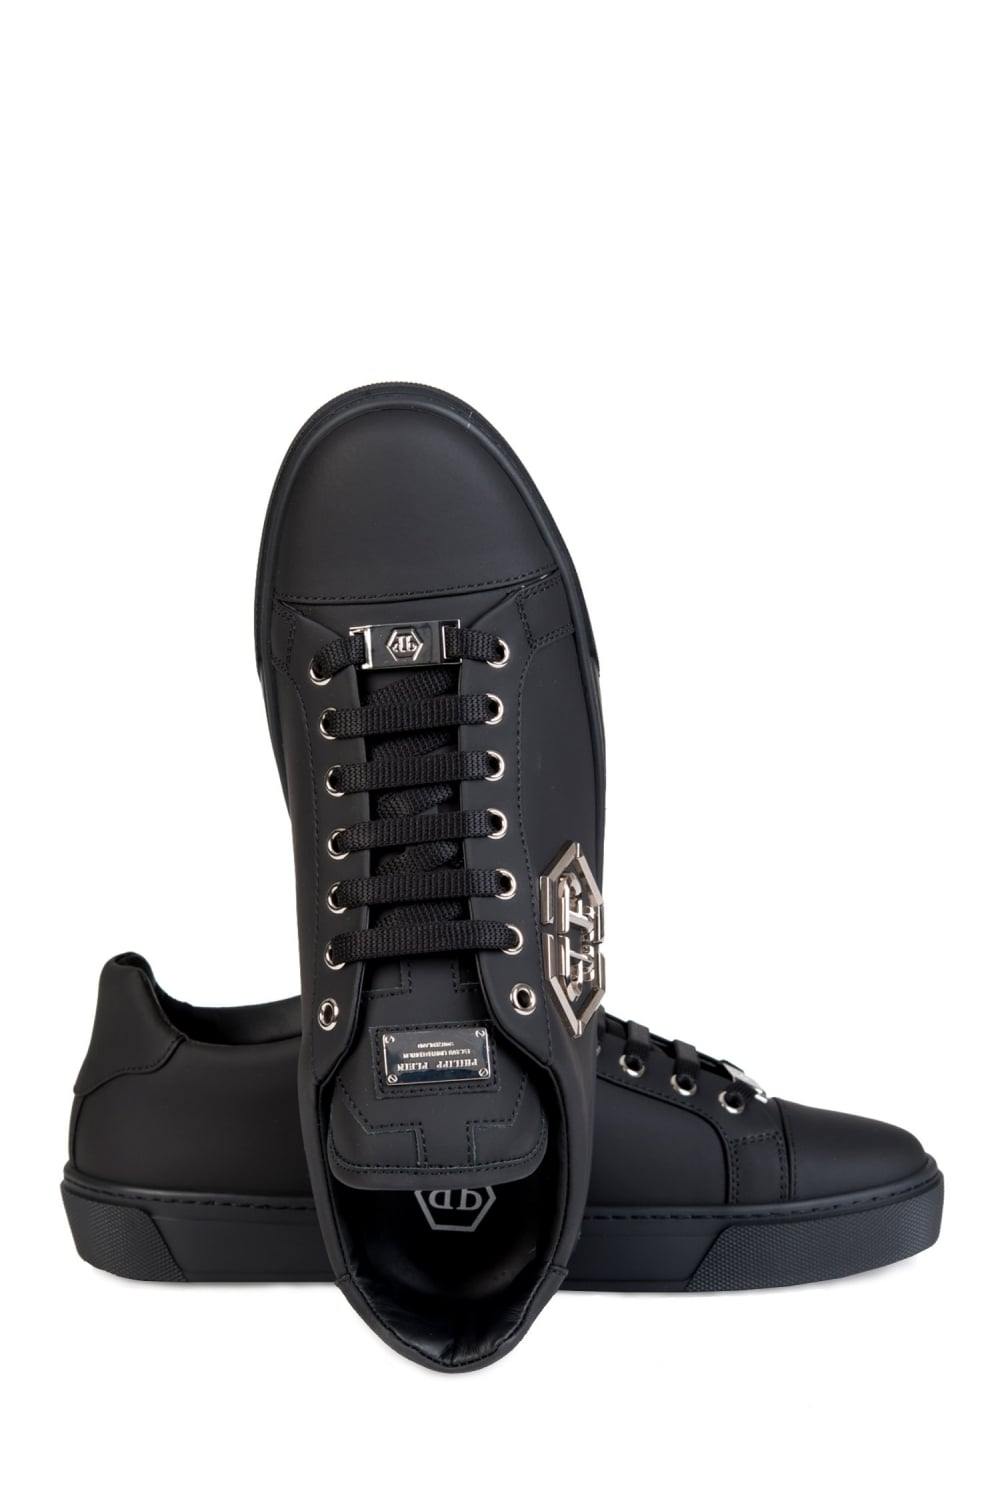 d2ea8bd8284 Philipp Plein  Queensland  Sneakers Black